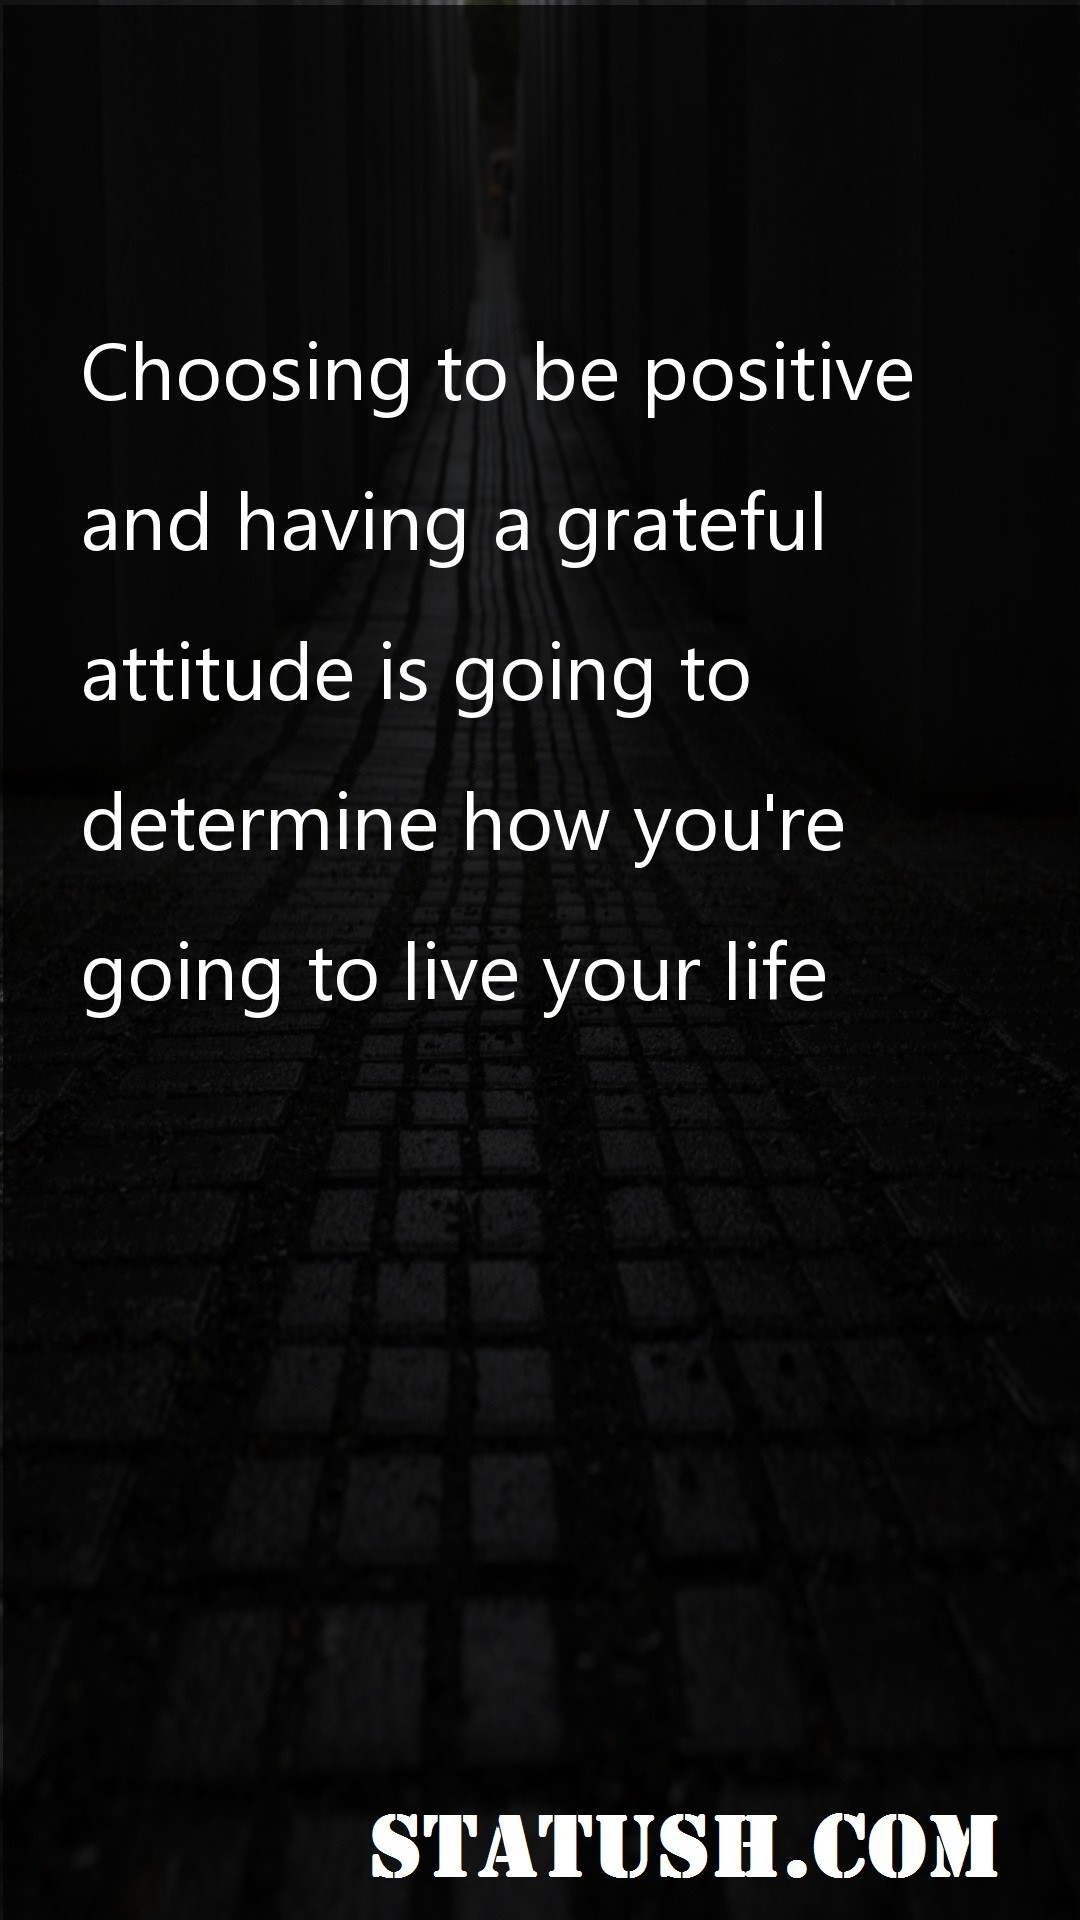 Choosing to be positive and having a grateful